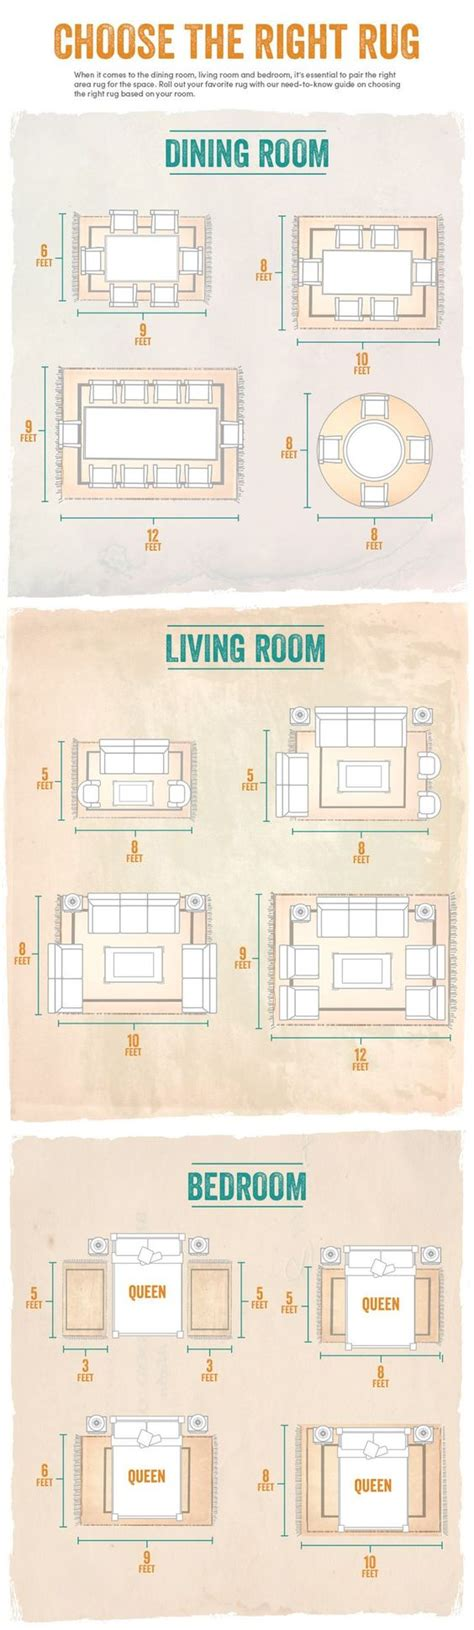 Rug Placement Rugs And Rug Size On Pinterest Rug Size Guide